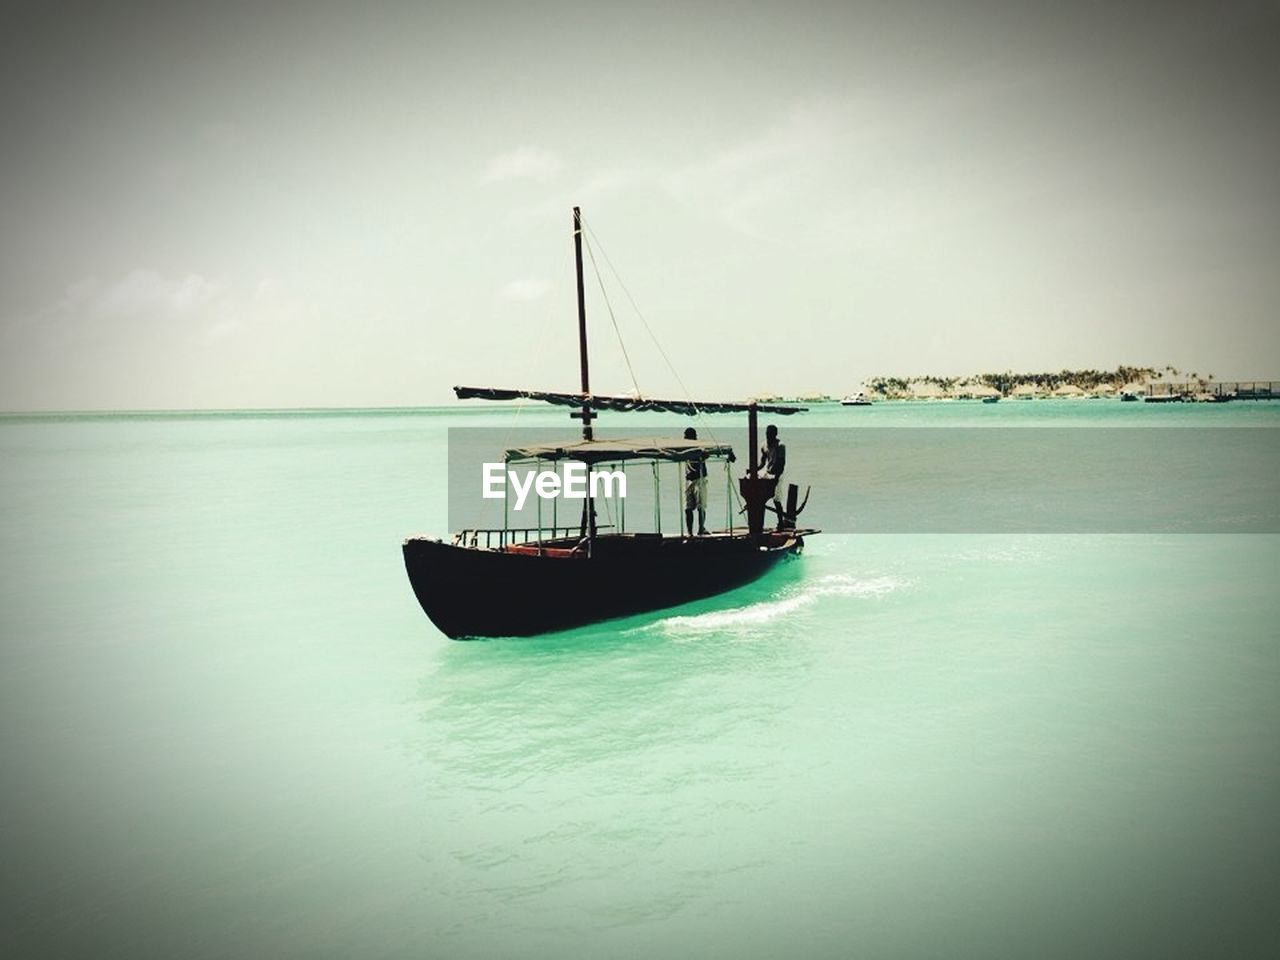 nautical vessel, transportation, sea, water, mode of transport, nature, boat, beauty in nature, sky, scenics, waterfront, horizon over water, tranquility, tranquil scene, moored, outdoors, no people, day, beach, sailing